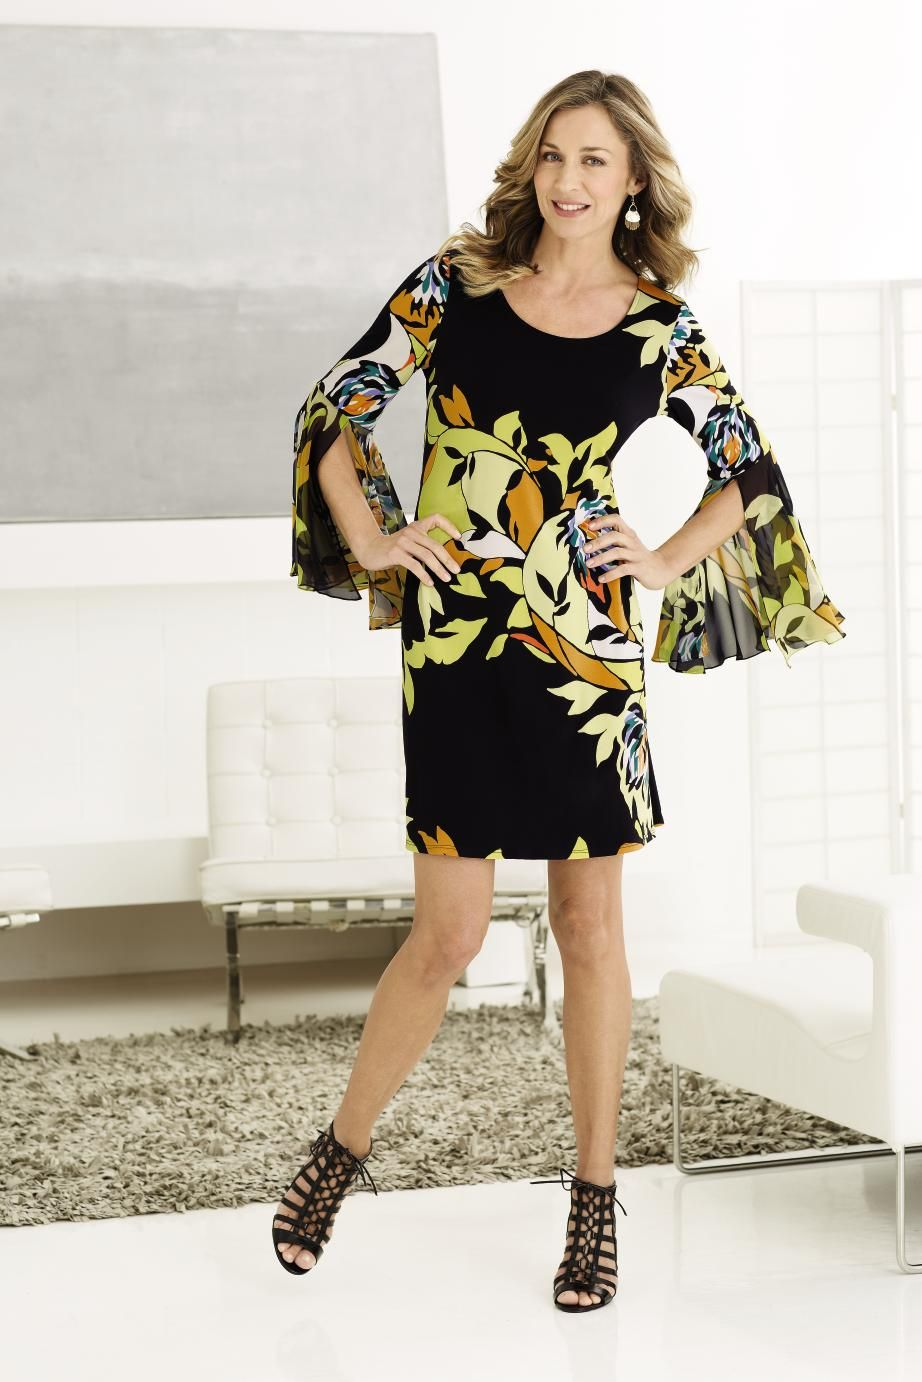 These Bell Sleeves On This Msk Dress Are Sure To Be A Show Stopper